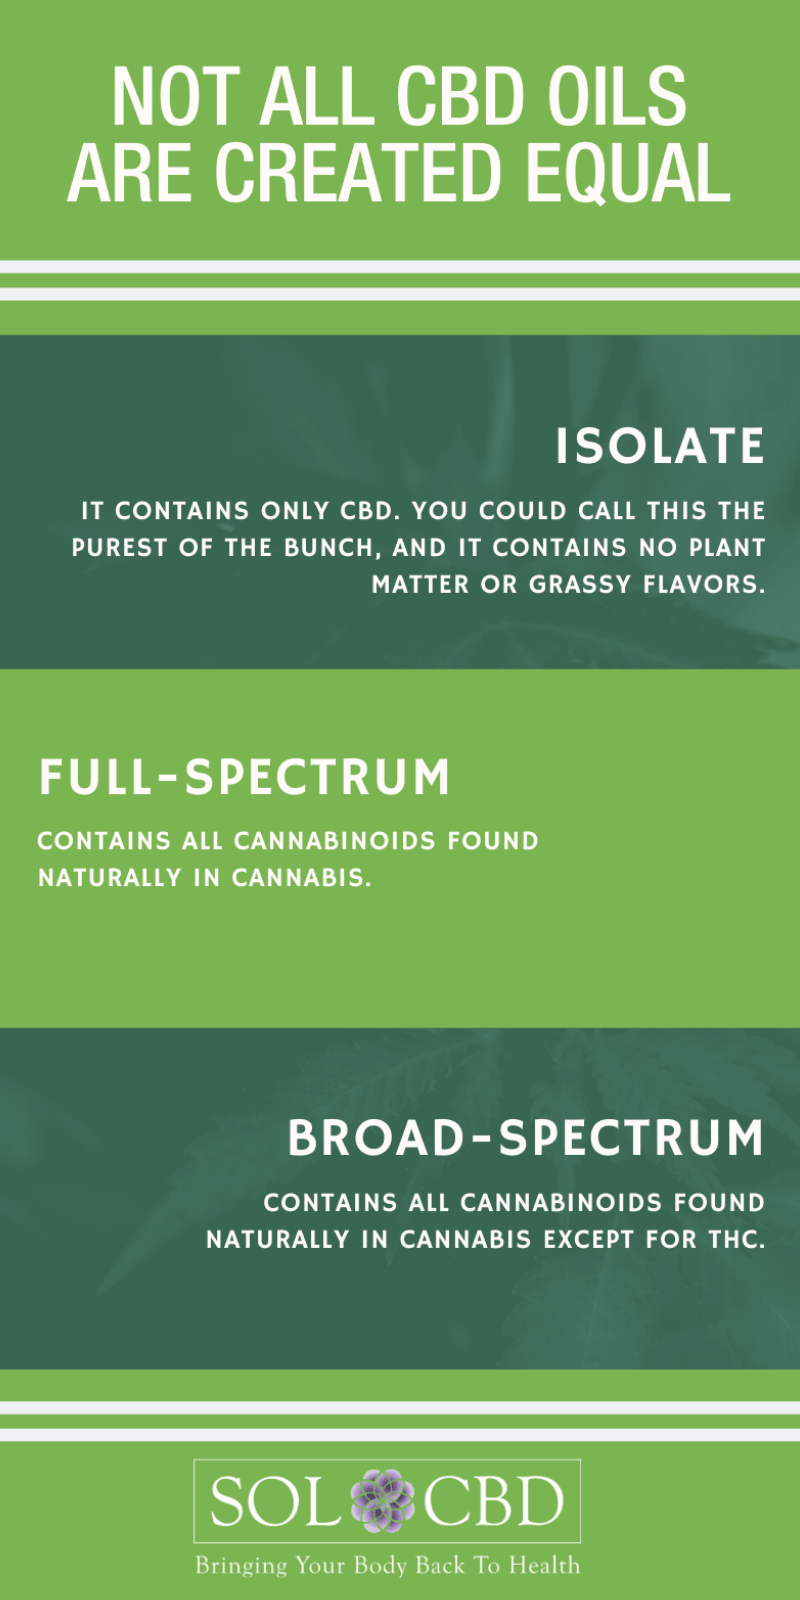 Not all CBD oils are created equal.